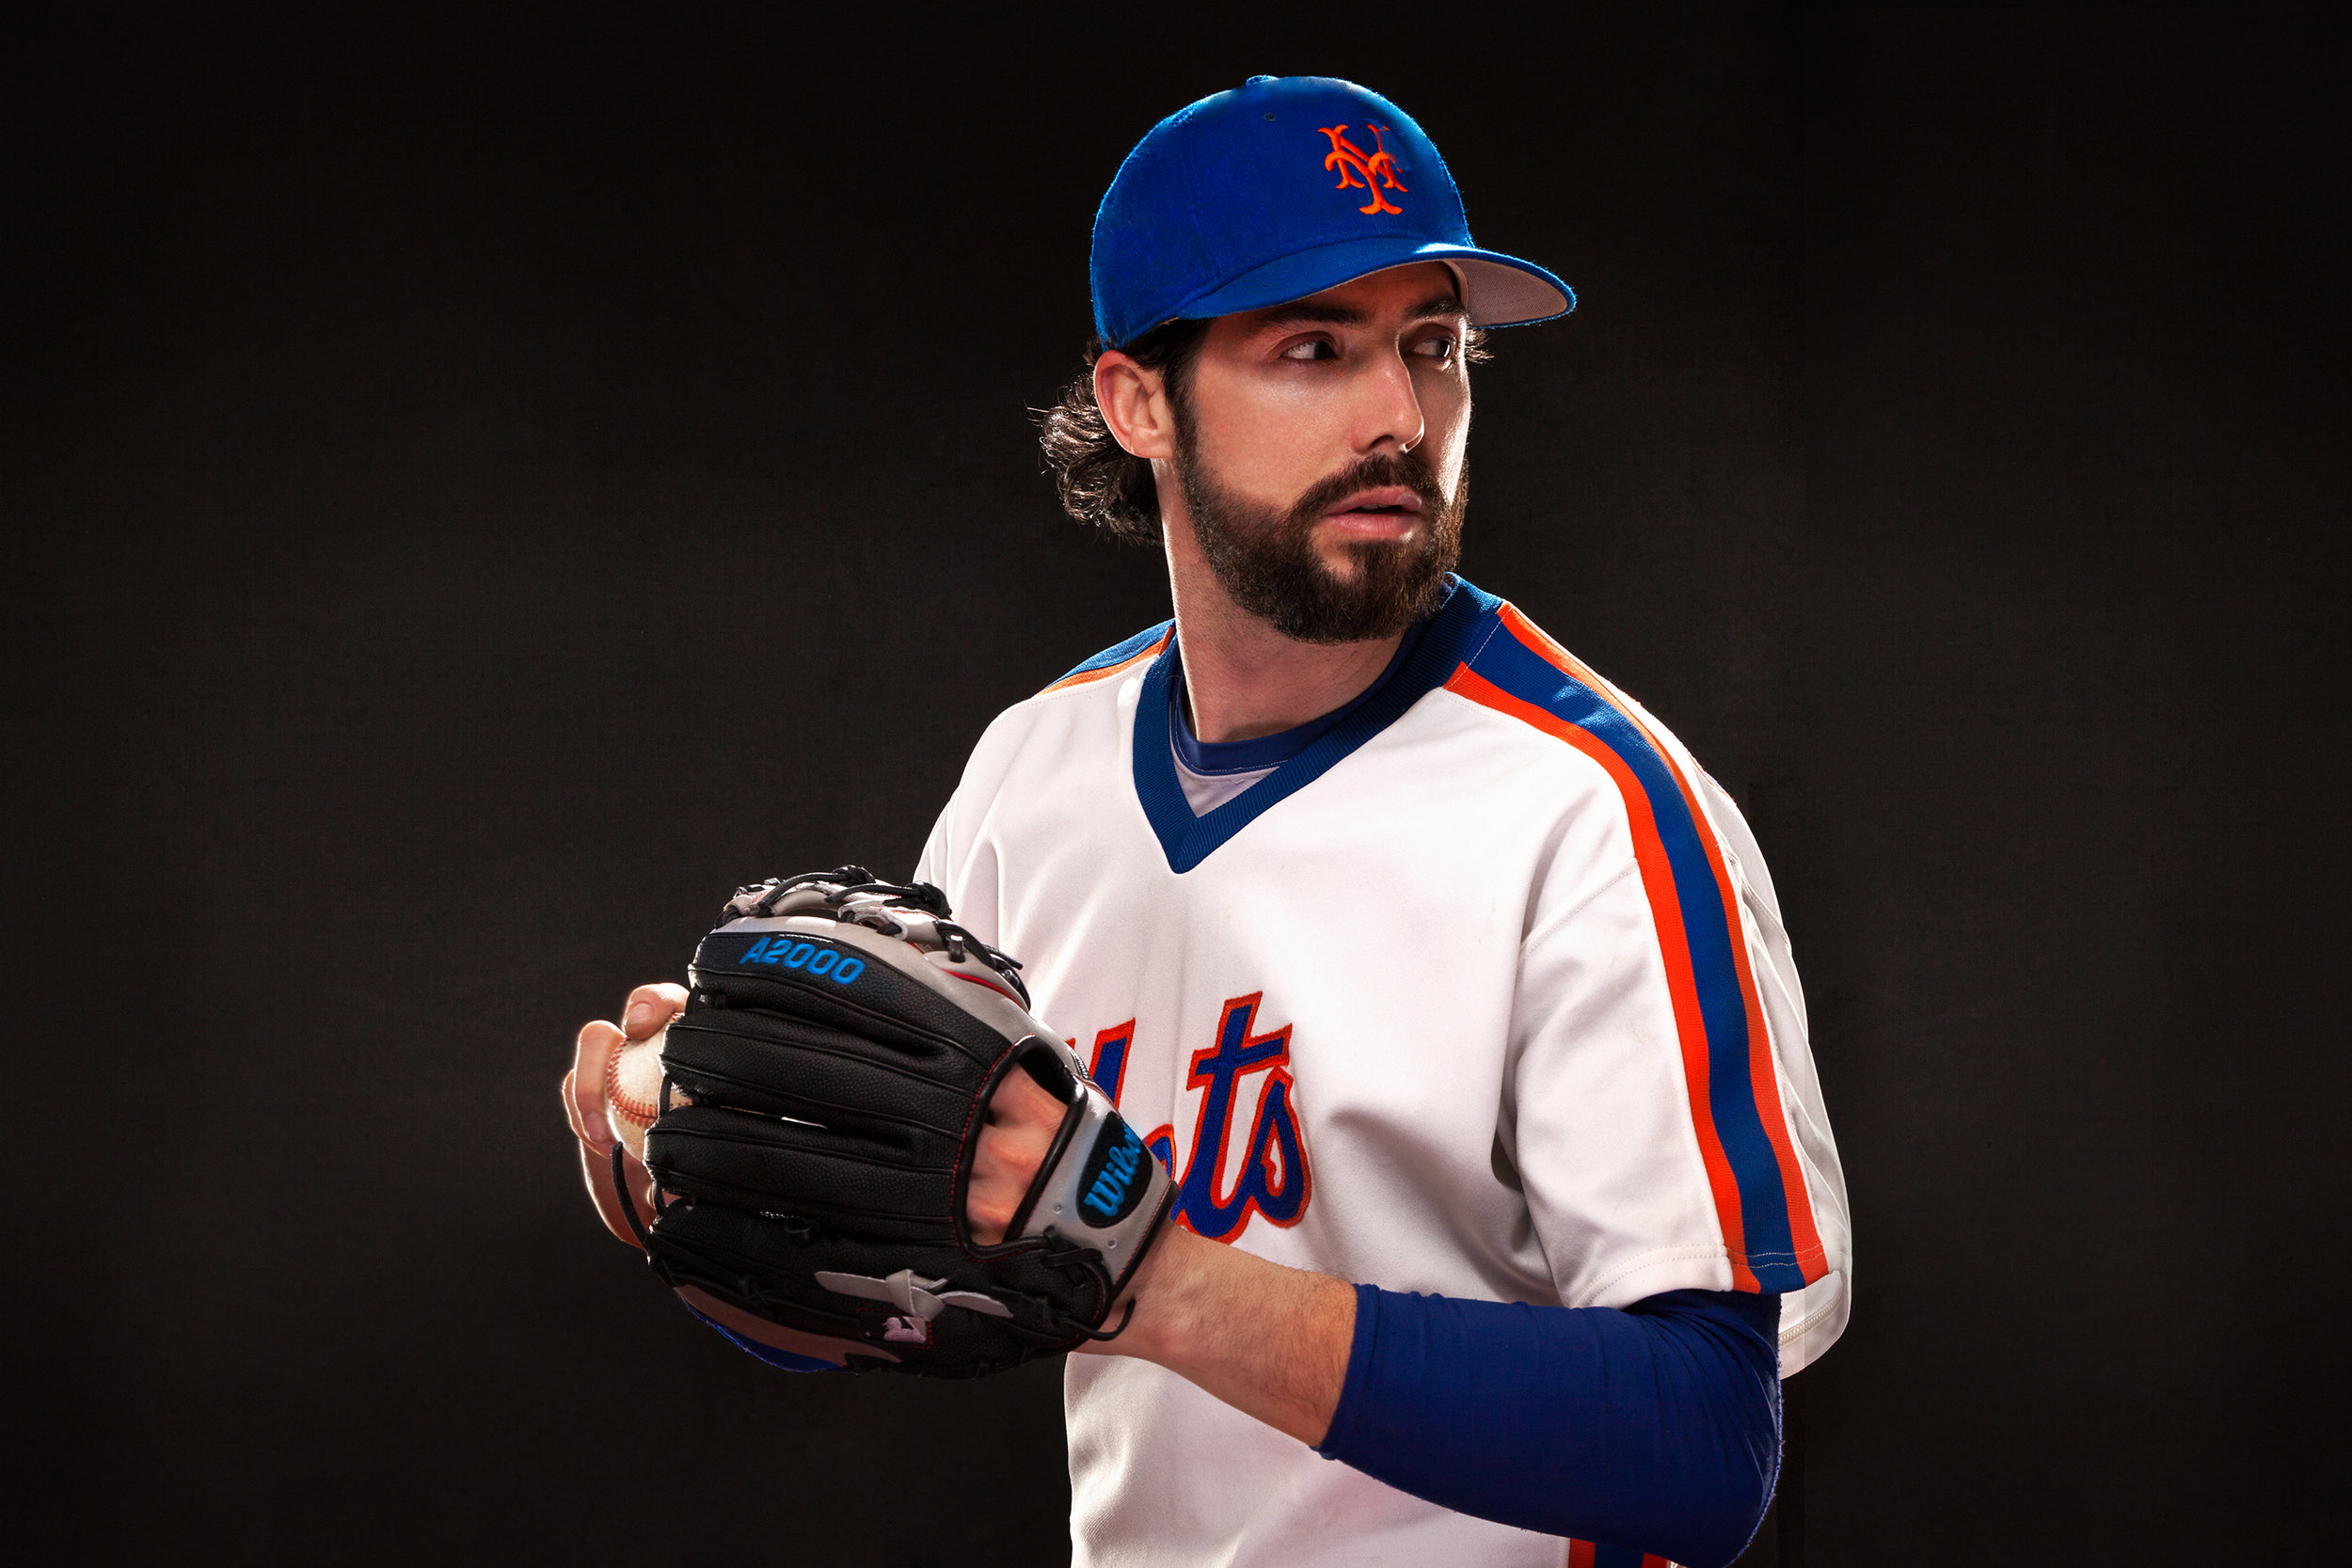 MLB METS BASEBALL PLAYER CREATIVE SPORTS ADVERTISING PORTRAIT NEW YORK JONATHAN R. BECKERMAN PHOTOGRAPHY 1.jpg